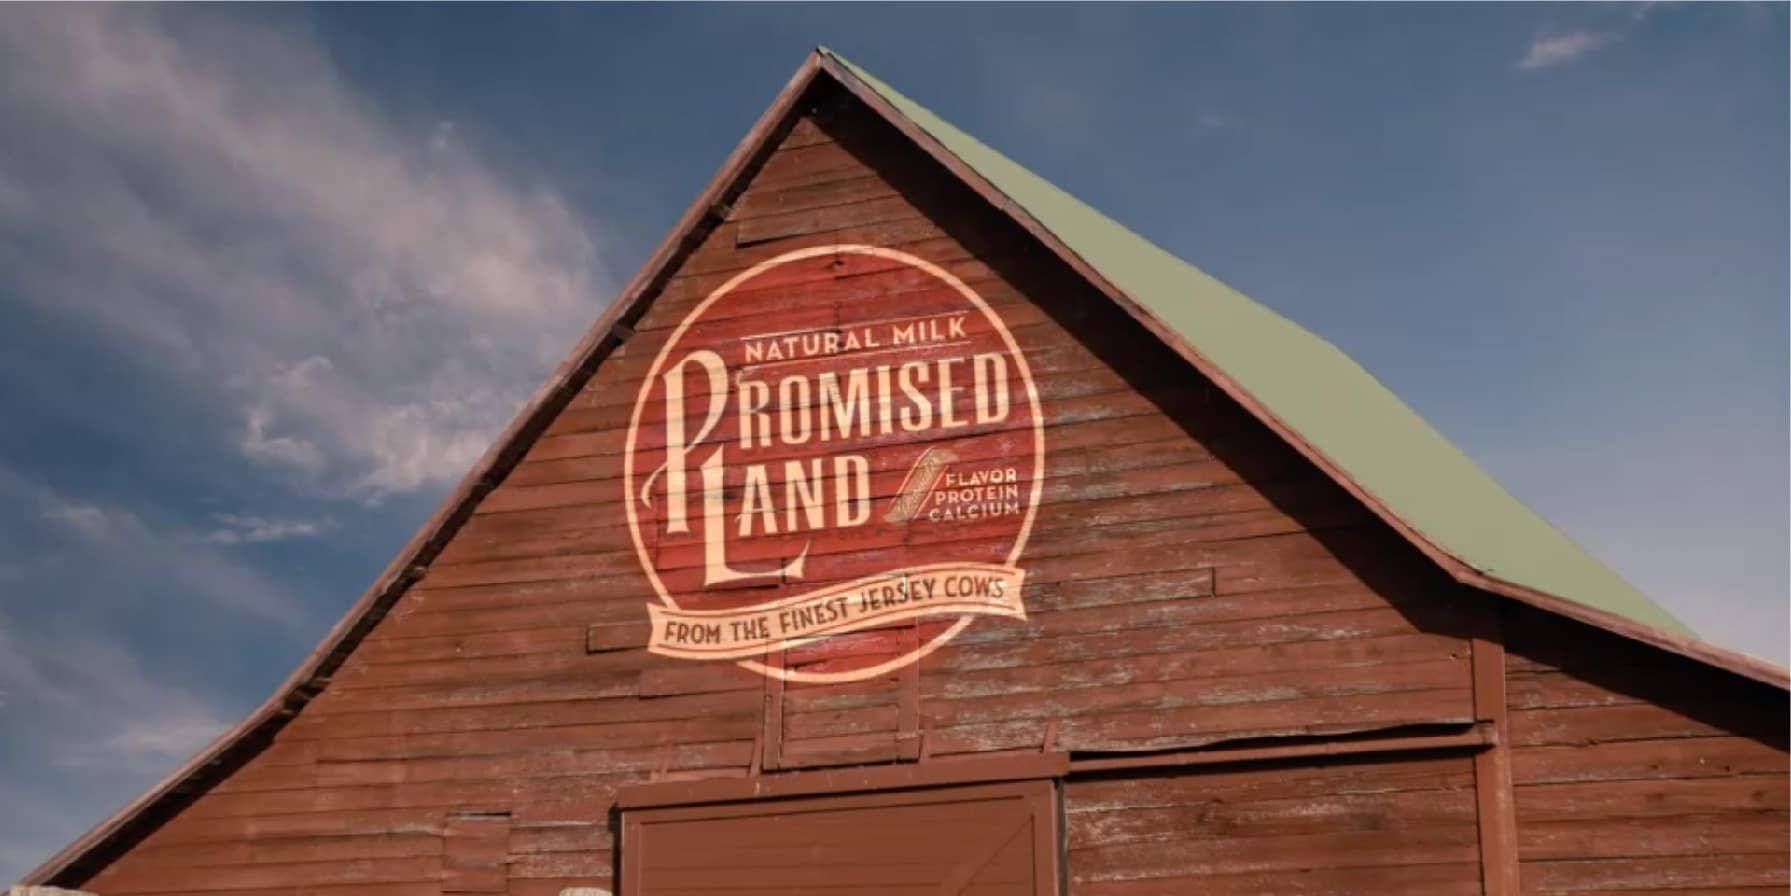 Promised land barn